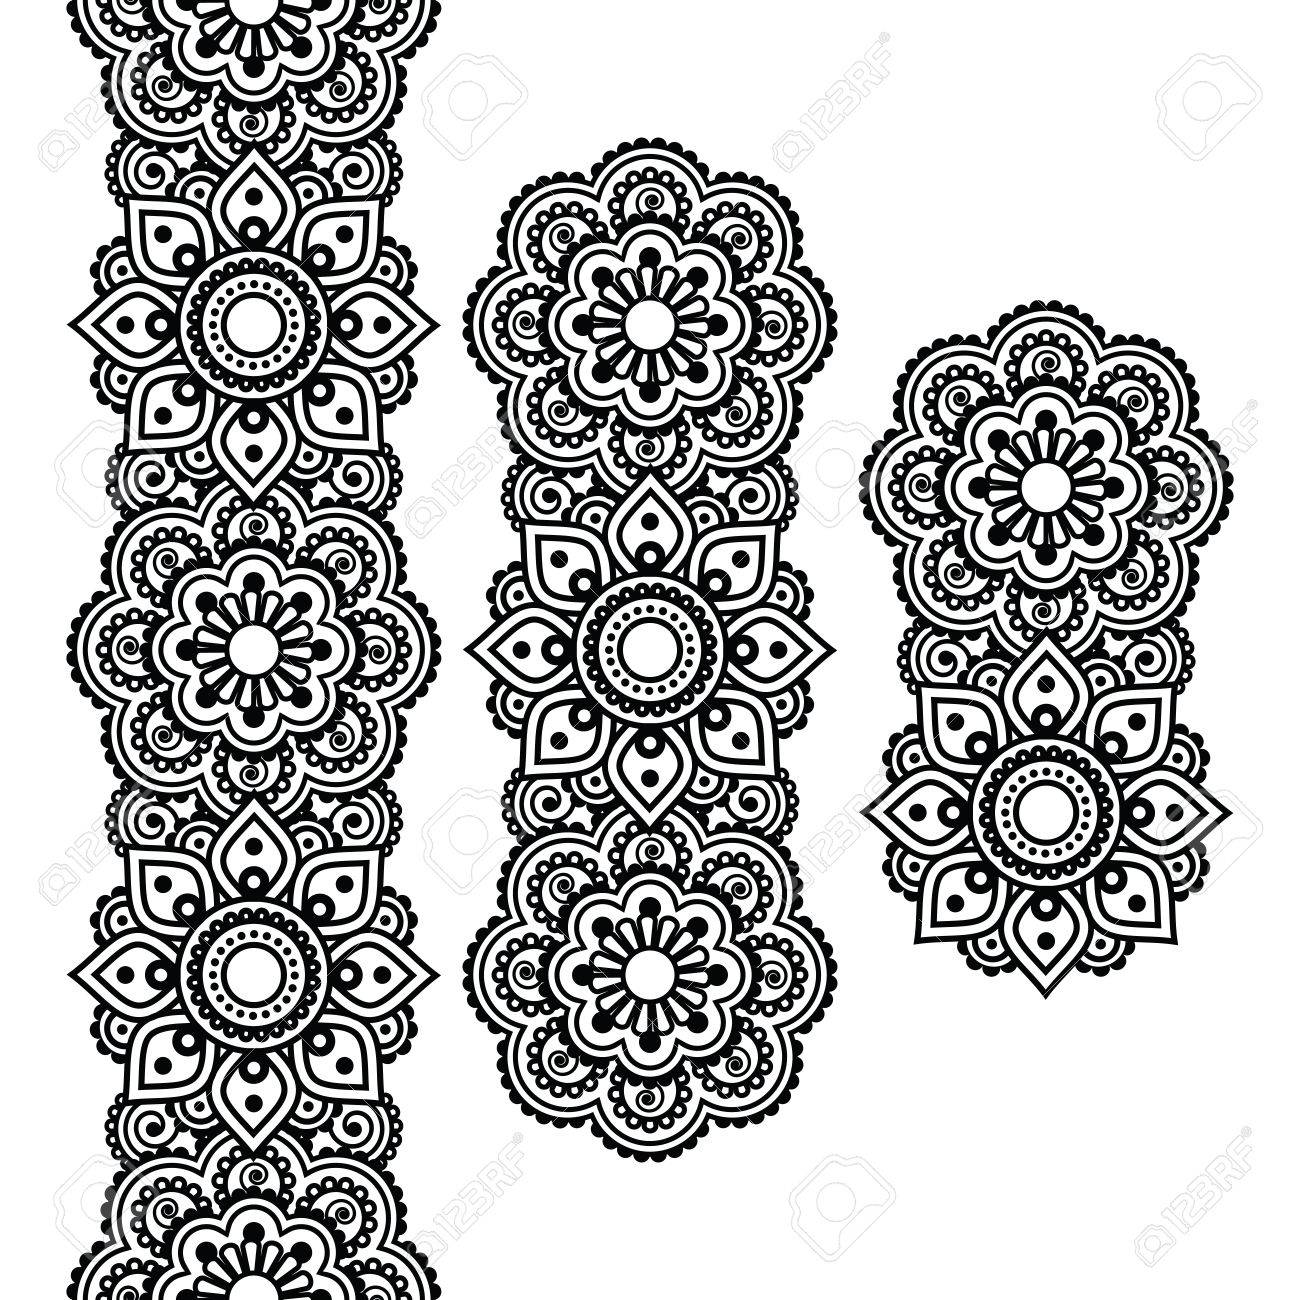 61,703 Henna Design Cliparts, Stock Vector And Royalty Free Henna ...